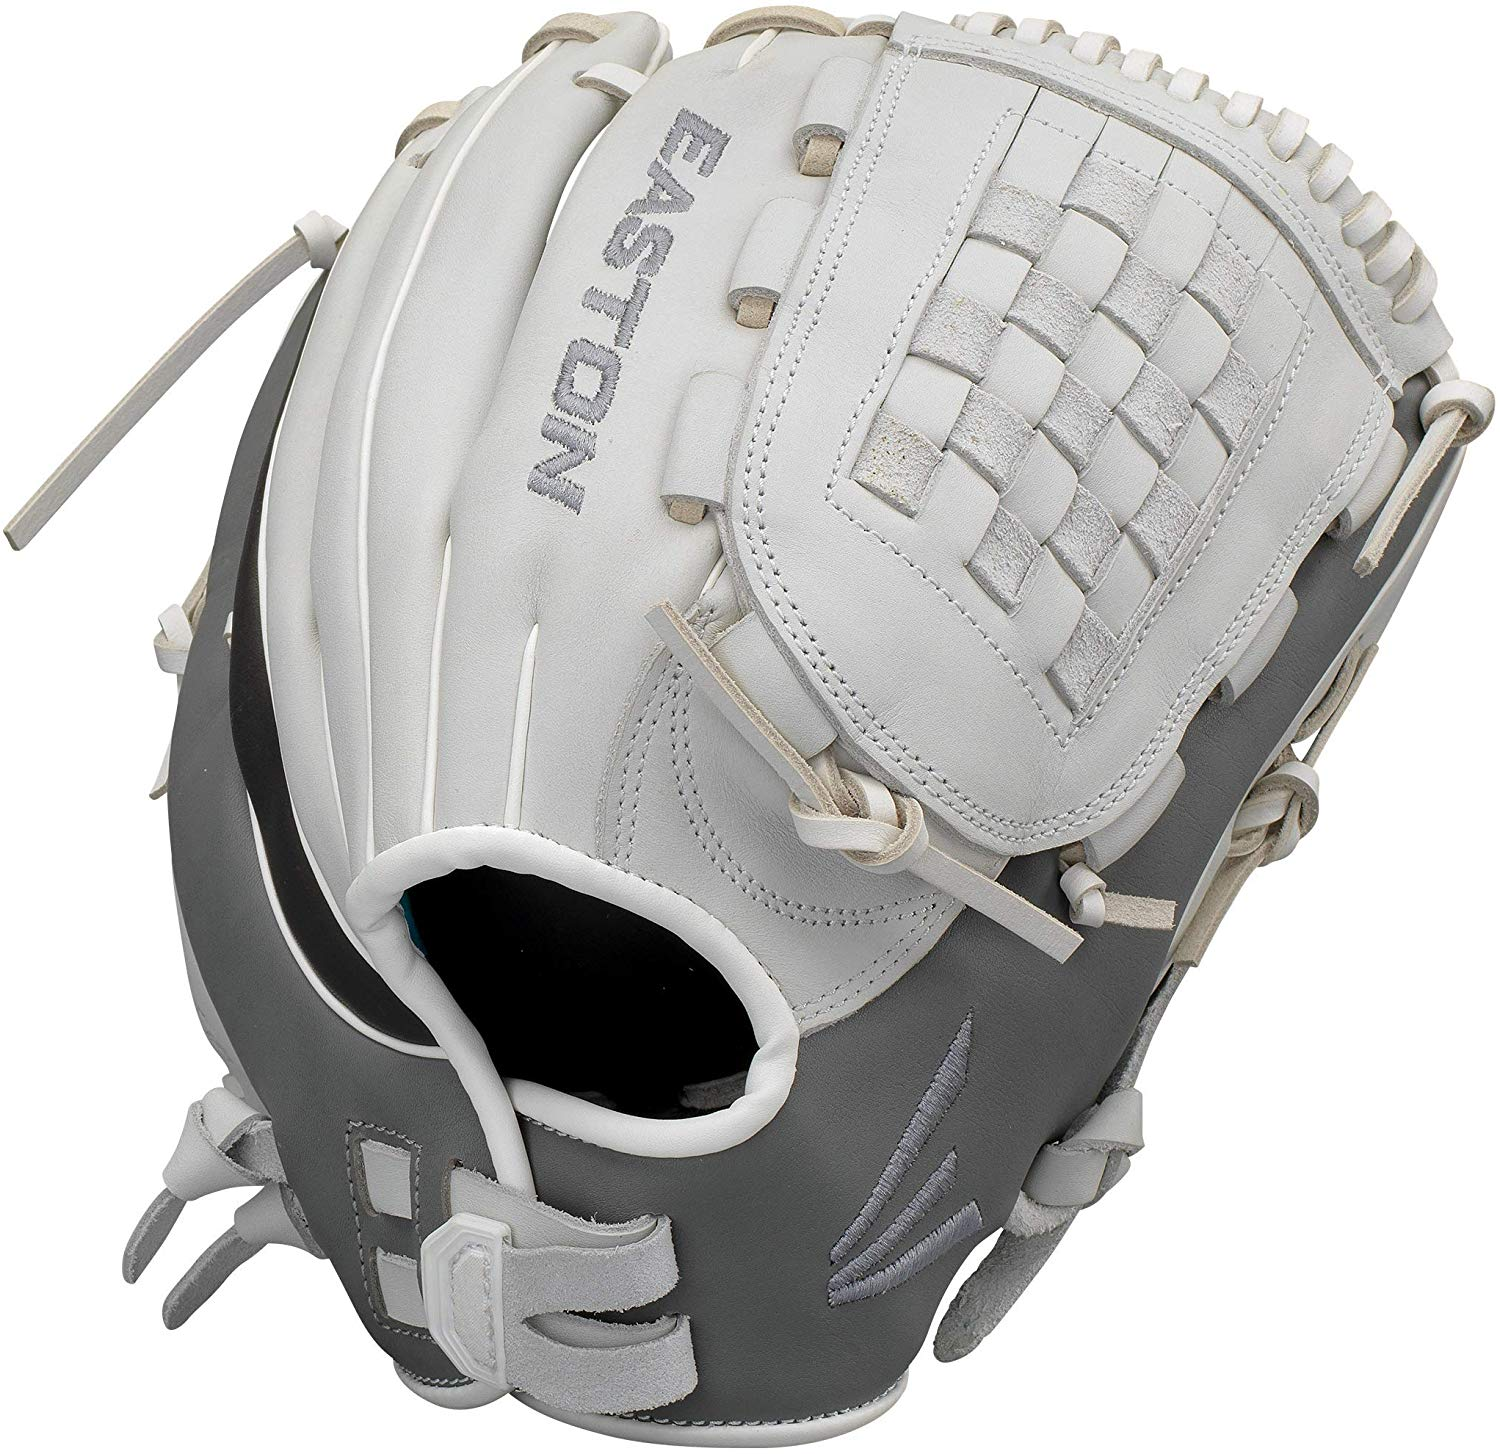 easton-ghost-fastpitch-softball-glove-12-5-right-hand-throw GH1251FP-RightHandThrow Easton 628412269954 Premium Steer USA leather Quantum Closure SystemTM provides adjustable hand opening